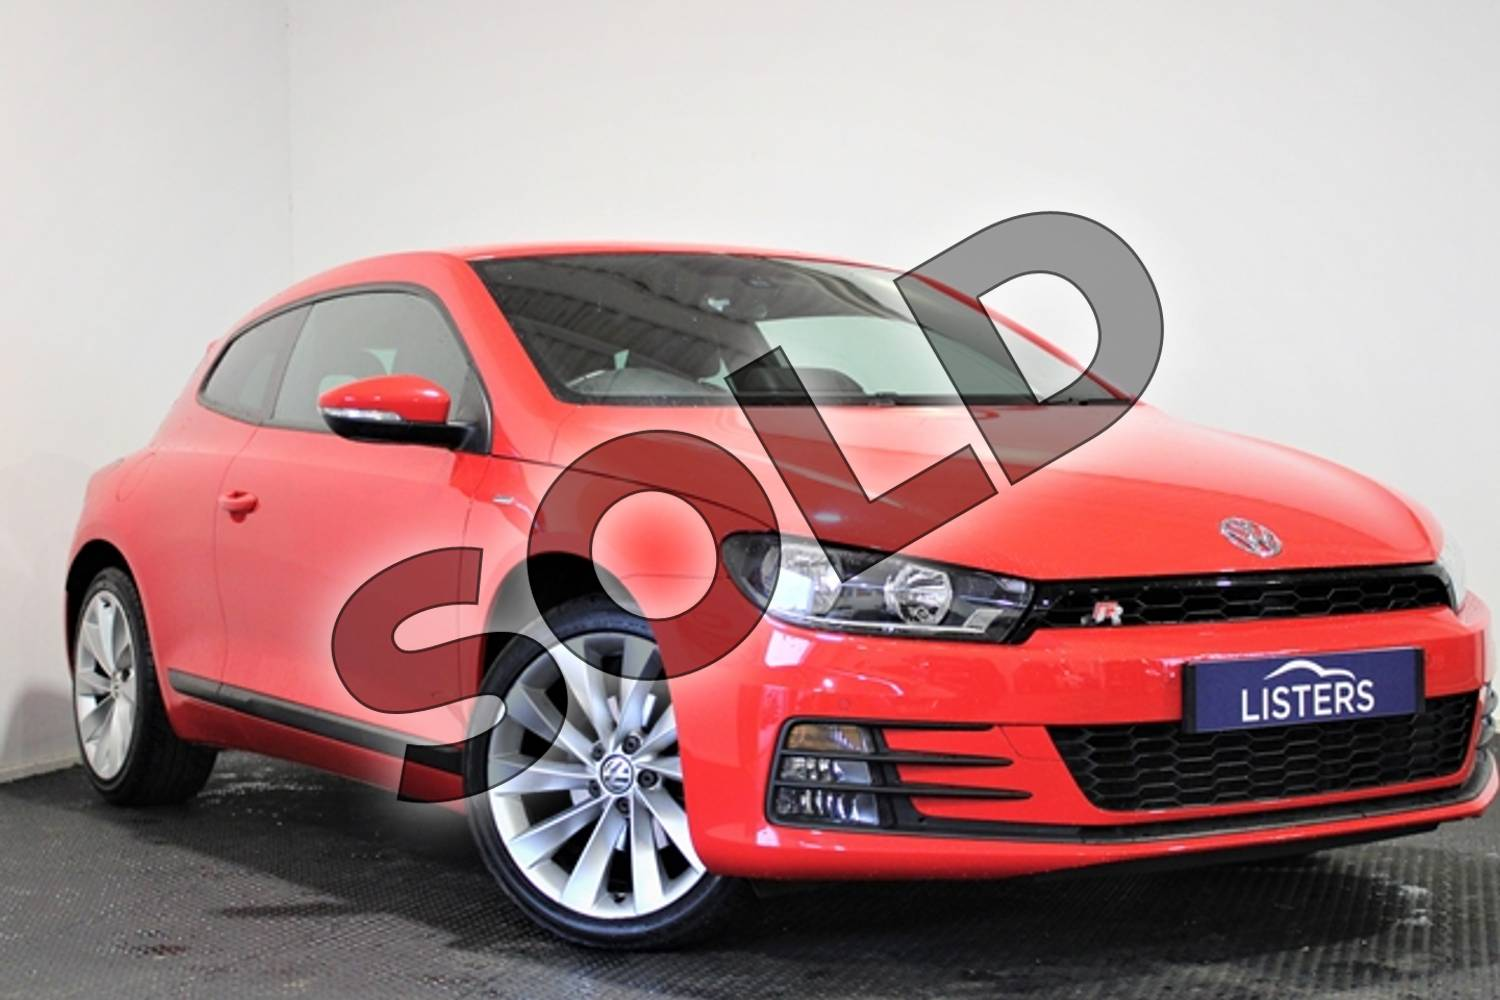 2016 Volkswagen Scirocco Diesel Coupe 2.0 TDI BlueMotion Tech GT 3dr in Special solid - Flash red at Listers U Stratford-upon-Avon